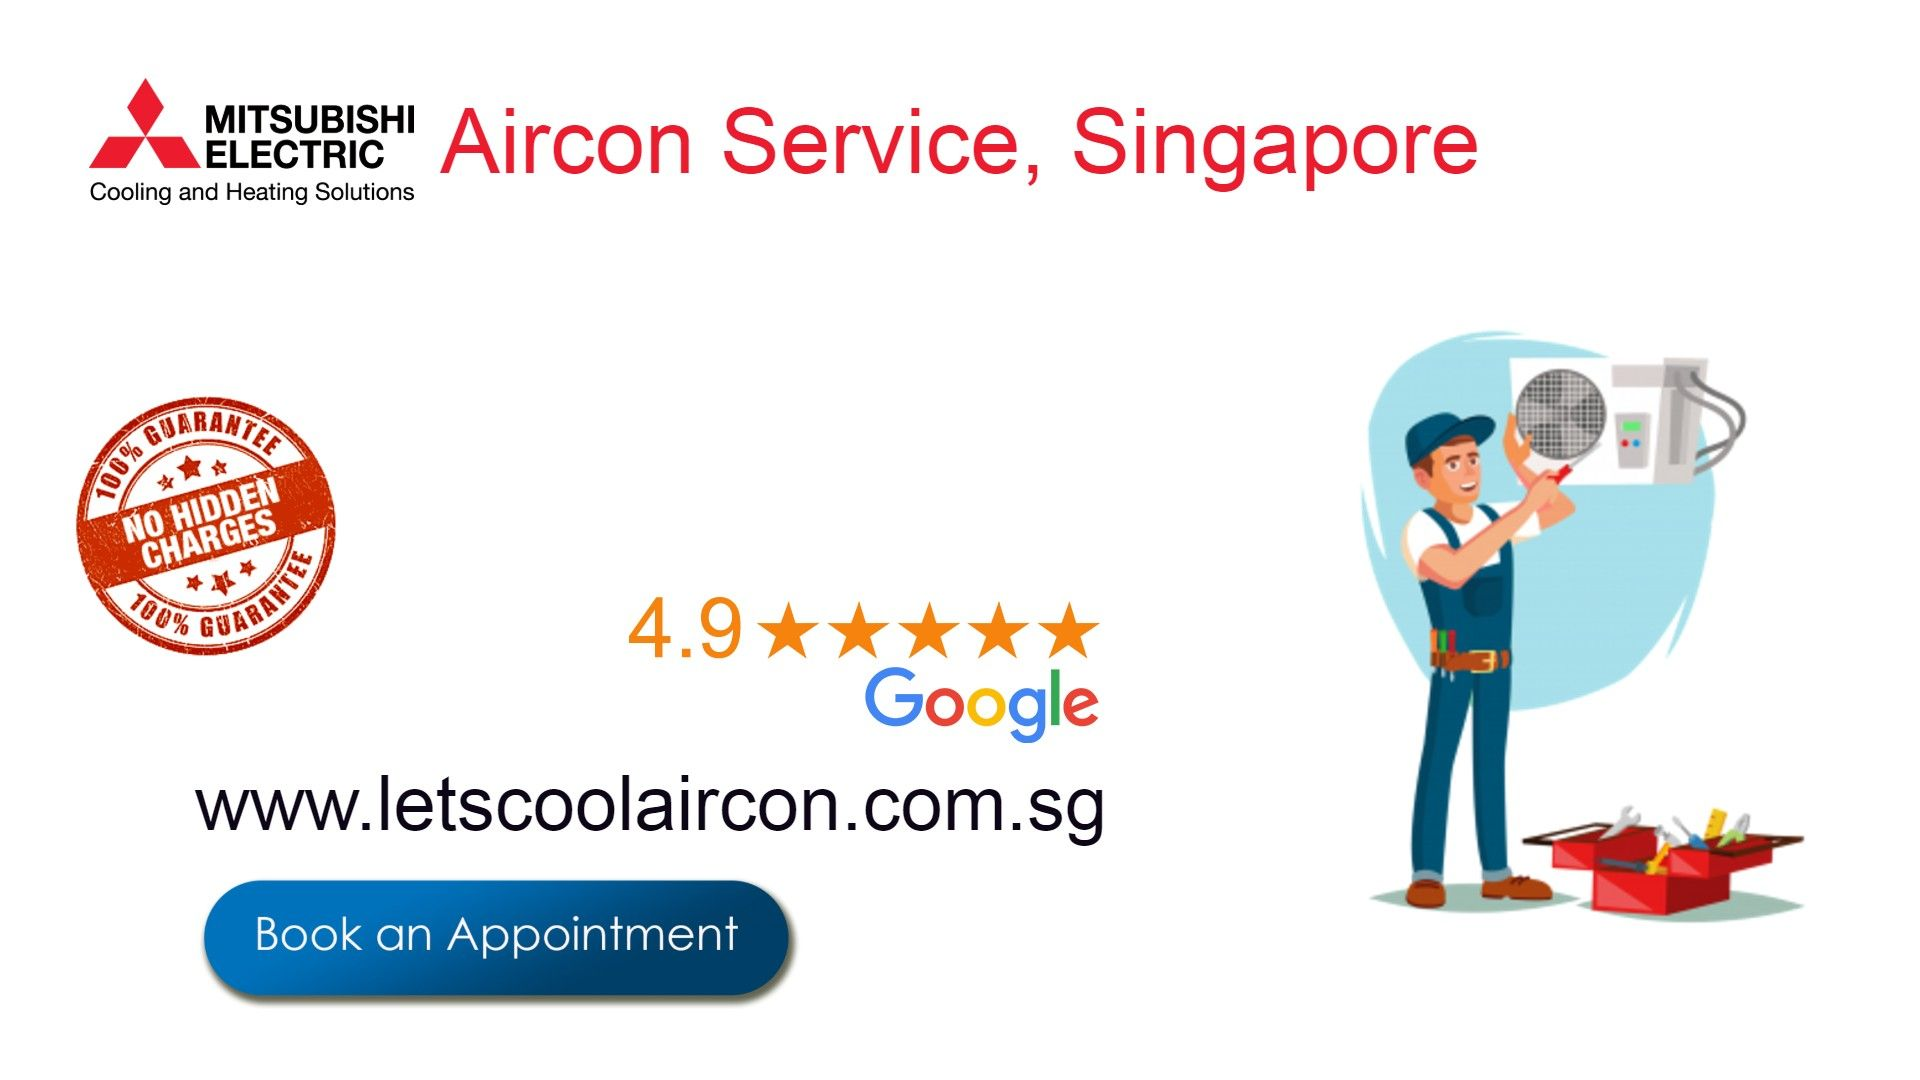 Mitsubishi Aircon service in singapore, in Affordable